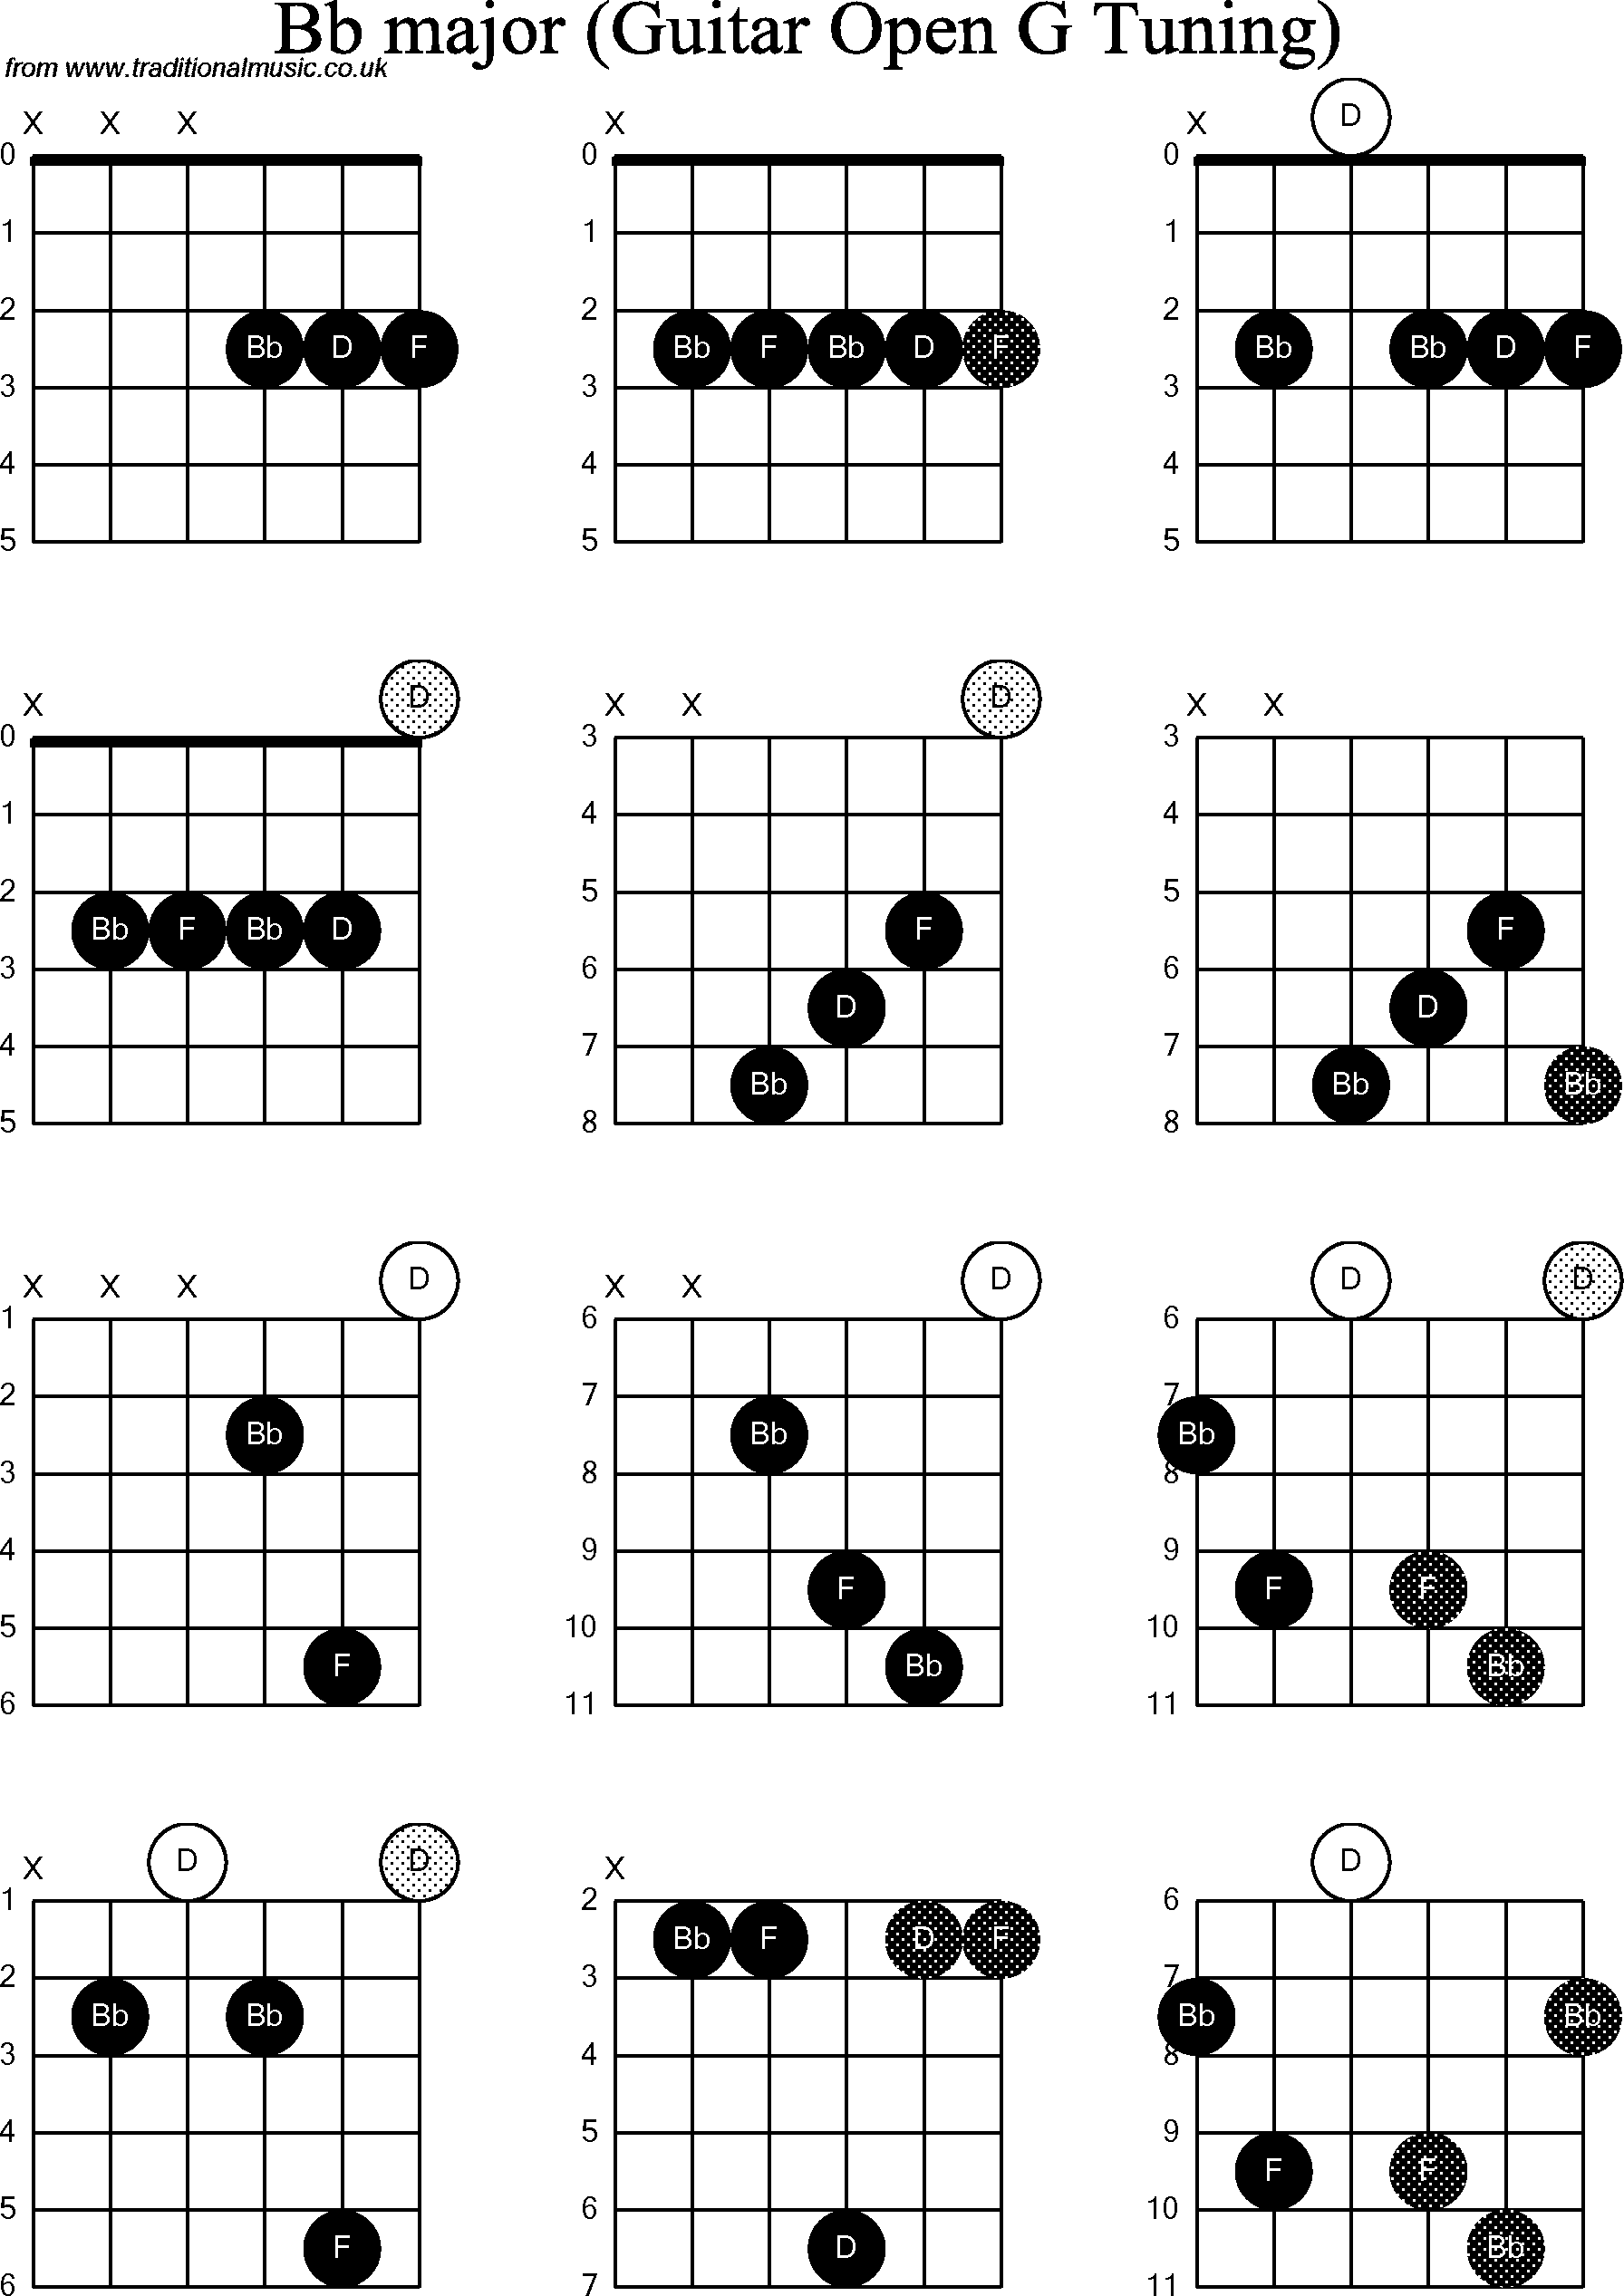 Chord diagrams for dobro bb chord diagrams for dobro bb hexwebz Image collections